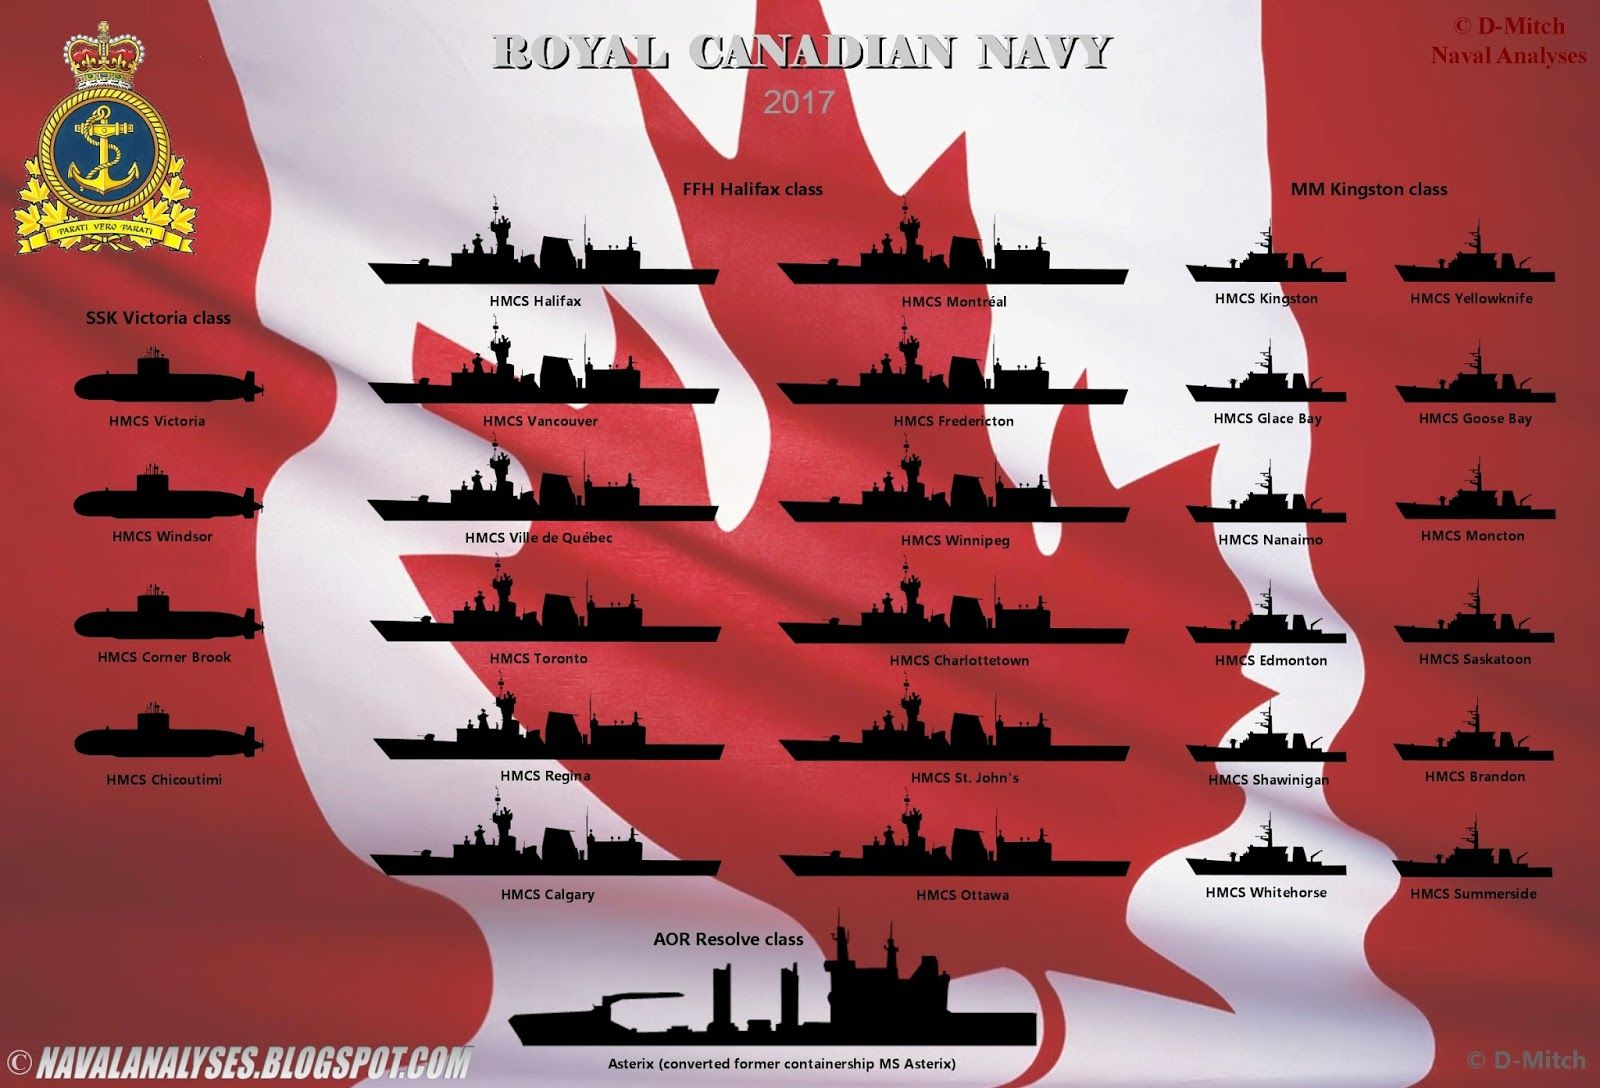 Written By D Mitch This Is The Third Article About Various Countries Navies Today In These Article Royal Canadian Navy Royal Australian Navy Royal Navy Ships